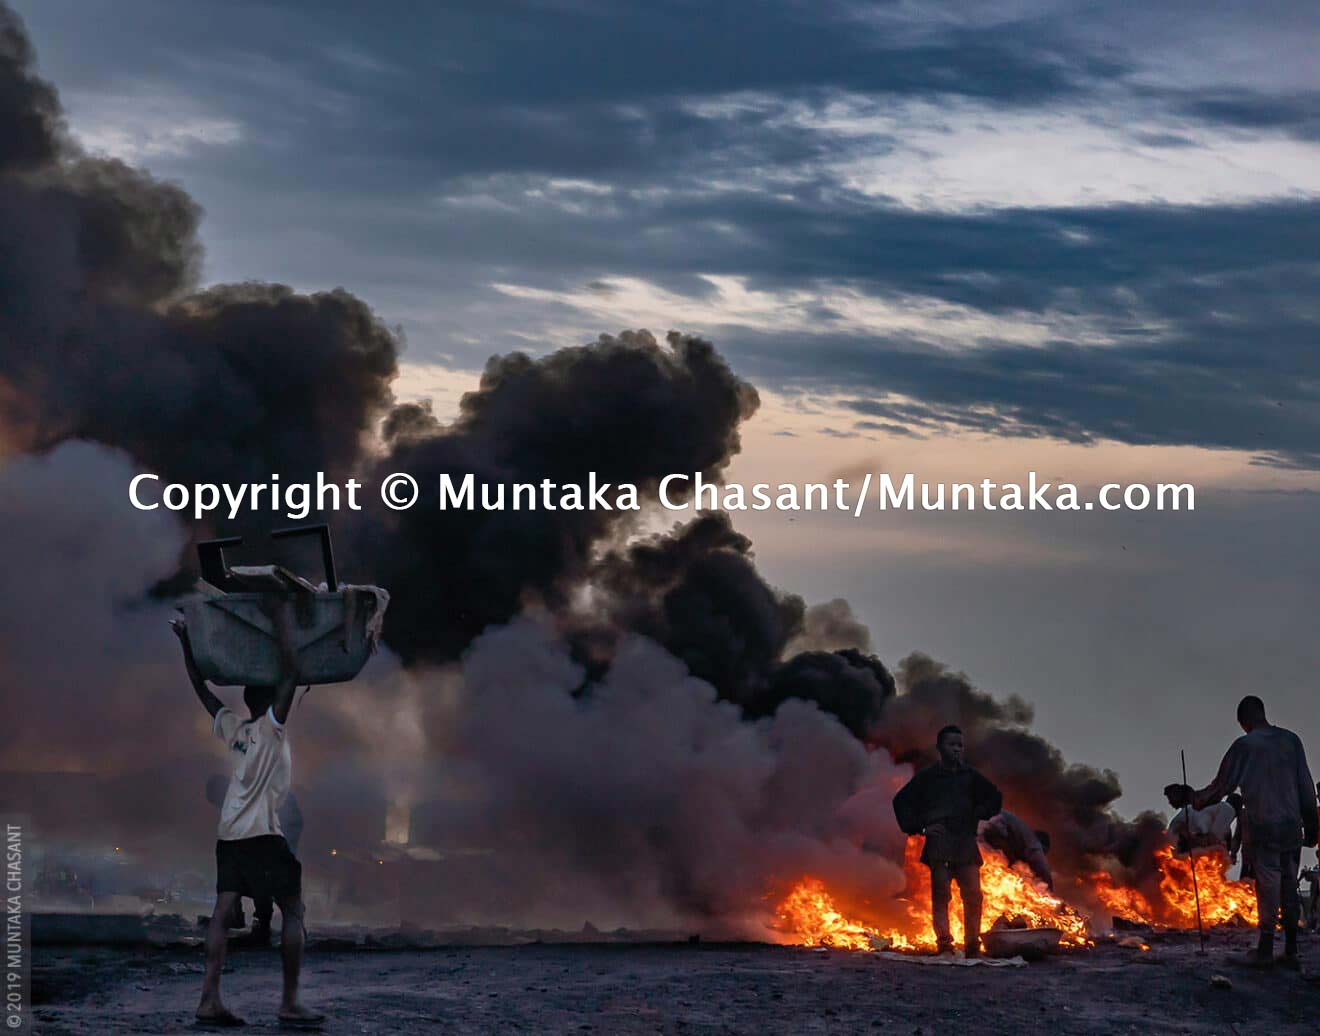 Burning Electrical Wires To Recover the Copper Inside at Agbogbloshie, Ghana. © 2019 Muntaka Chasant